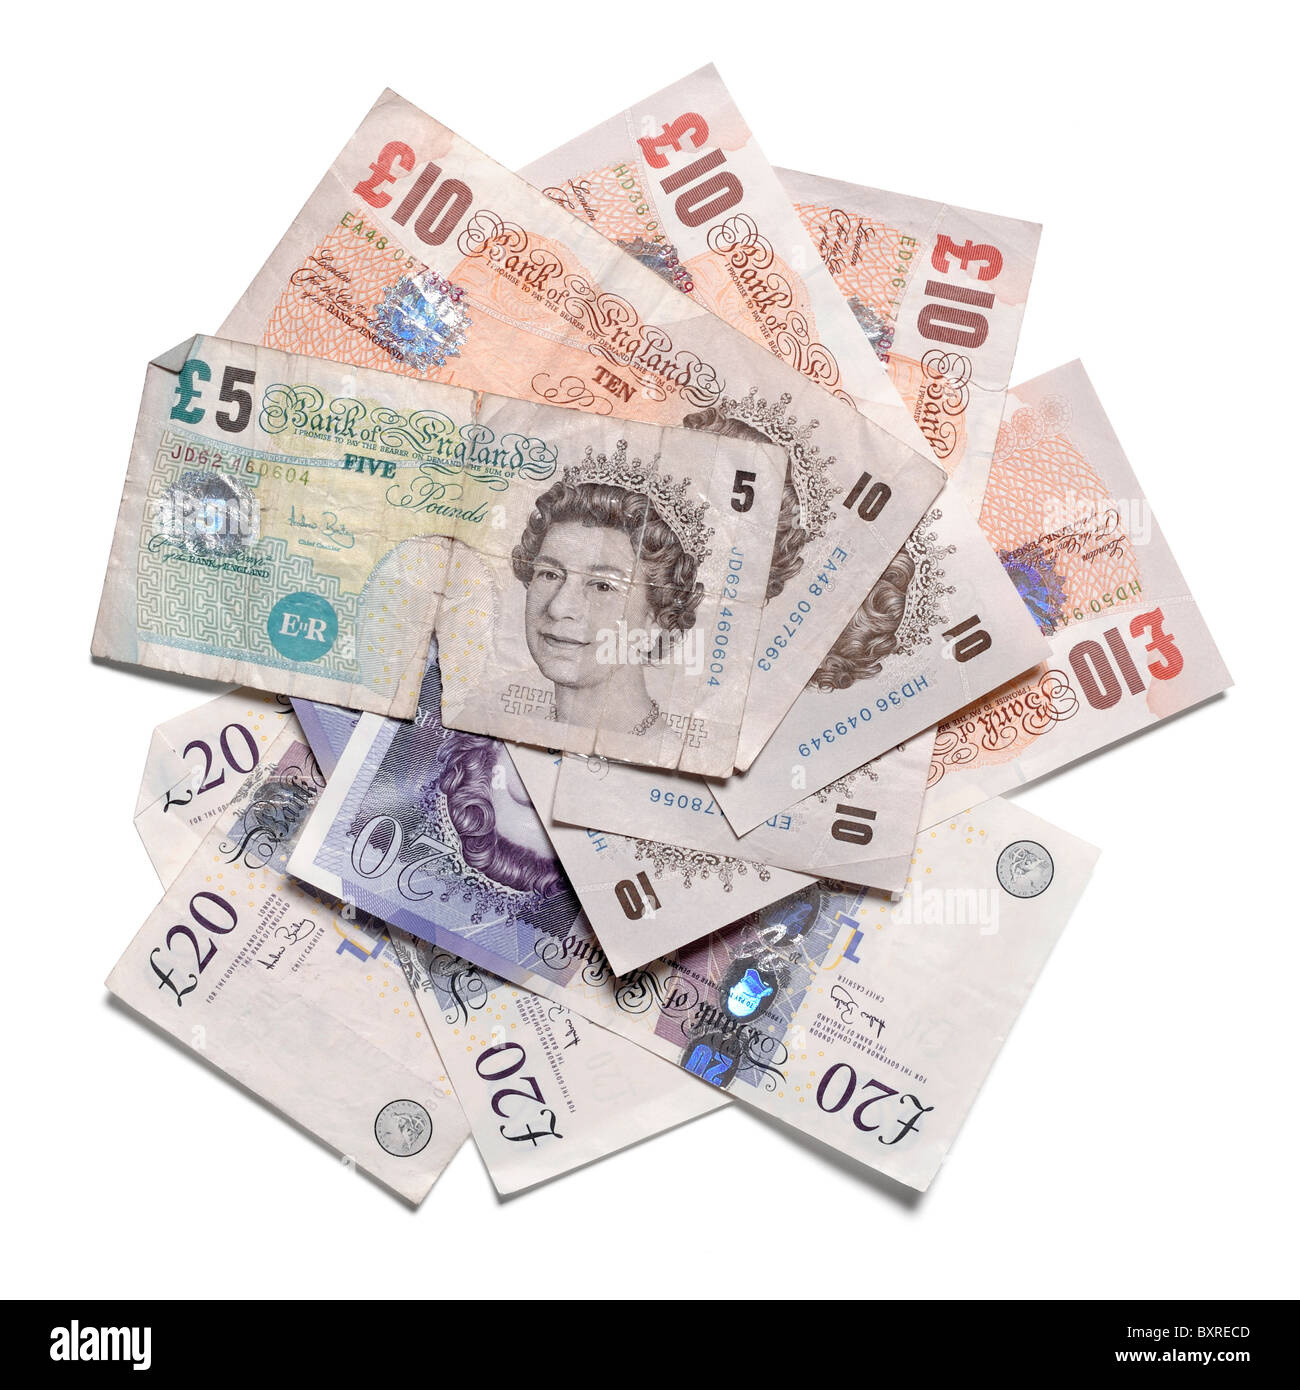 Pound sterling paper money - Stock Image